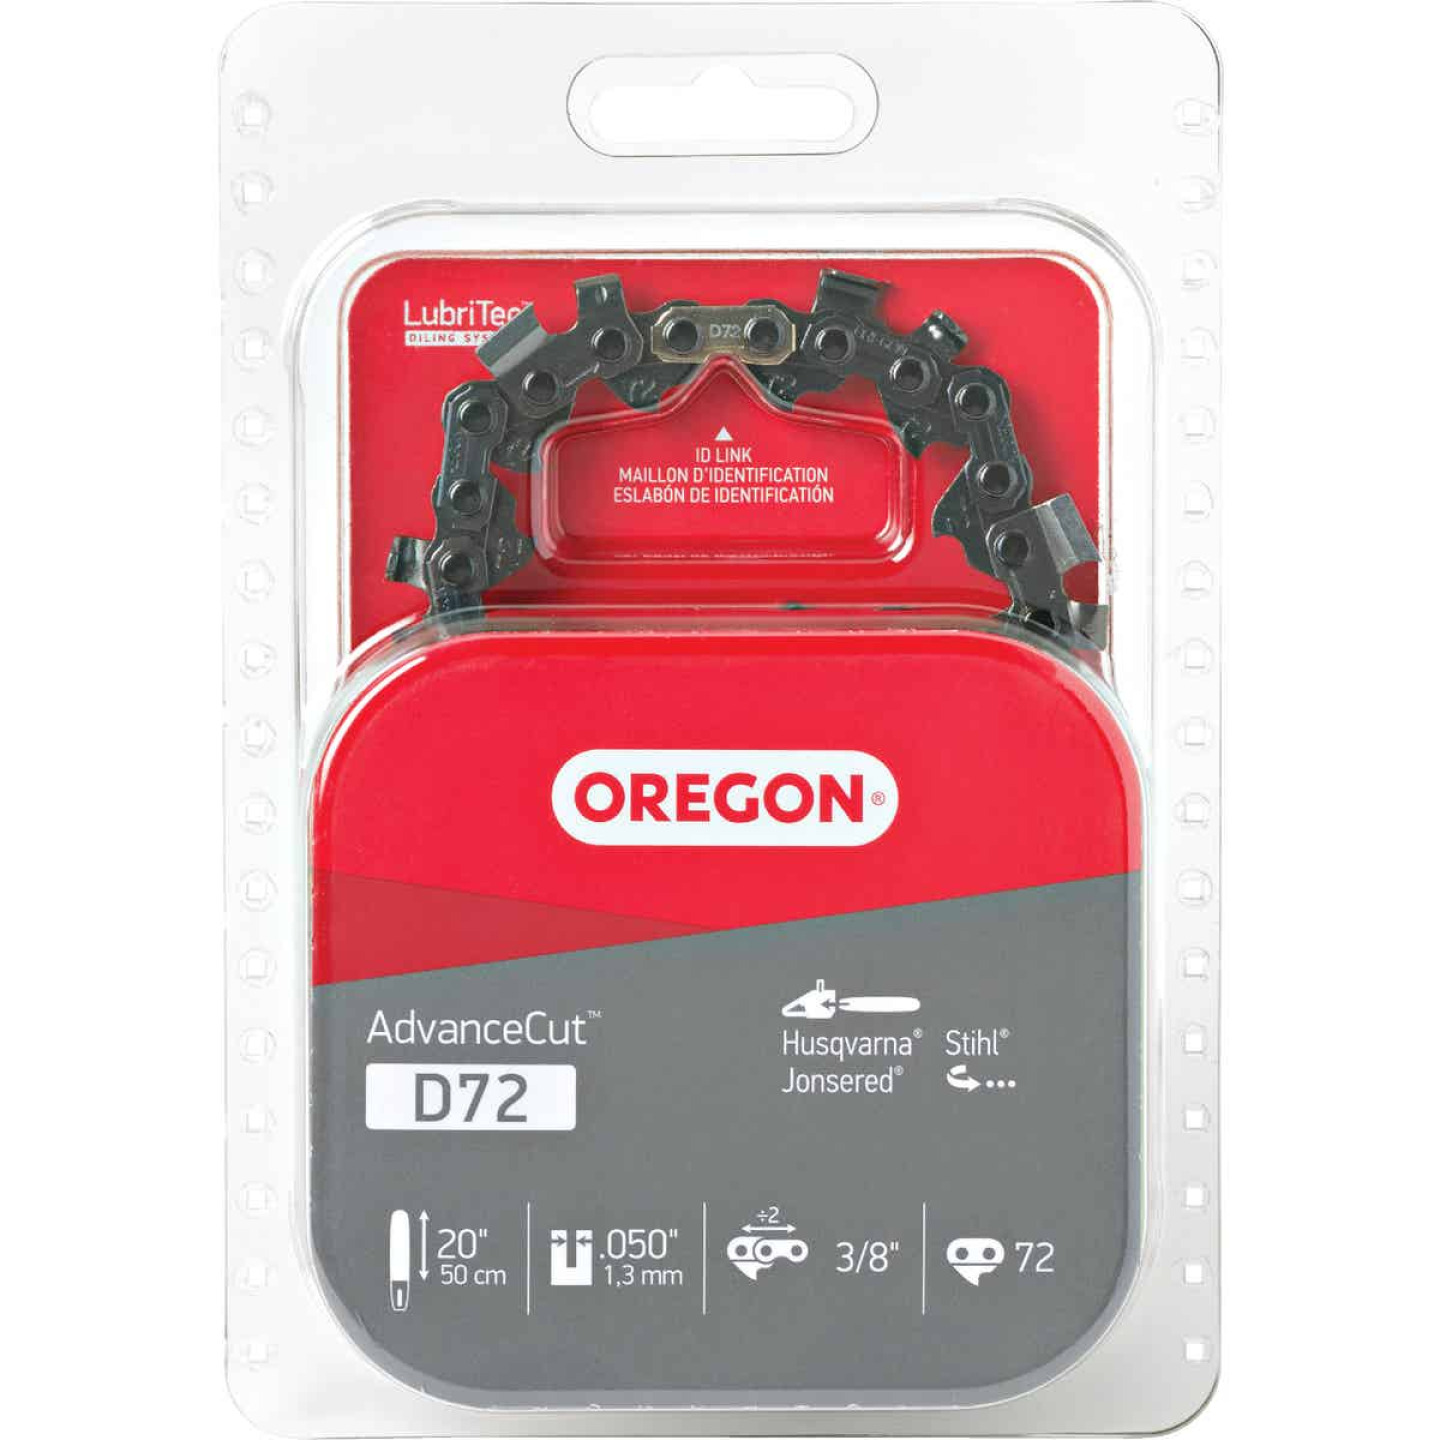 Oregon AdvanceCut D72 20/21 In. Chainsaw Chain Image 1